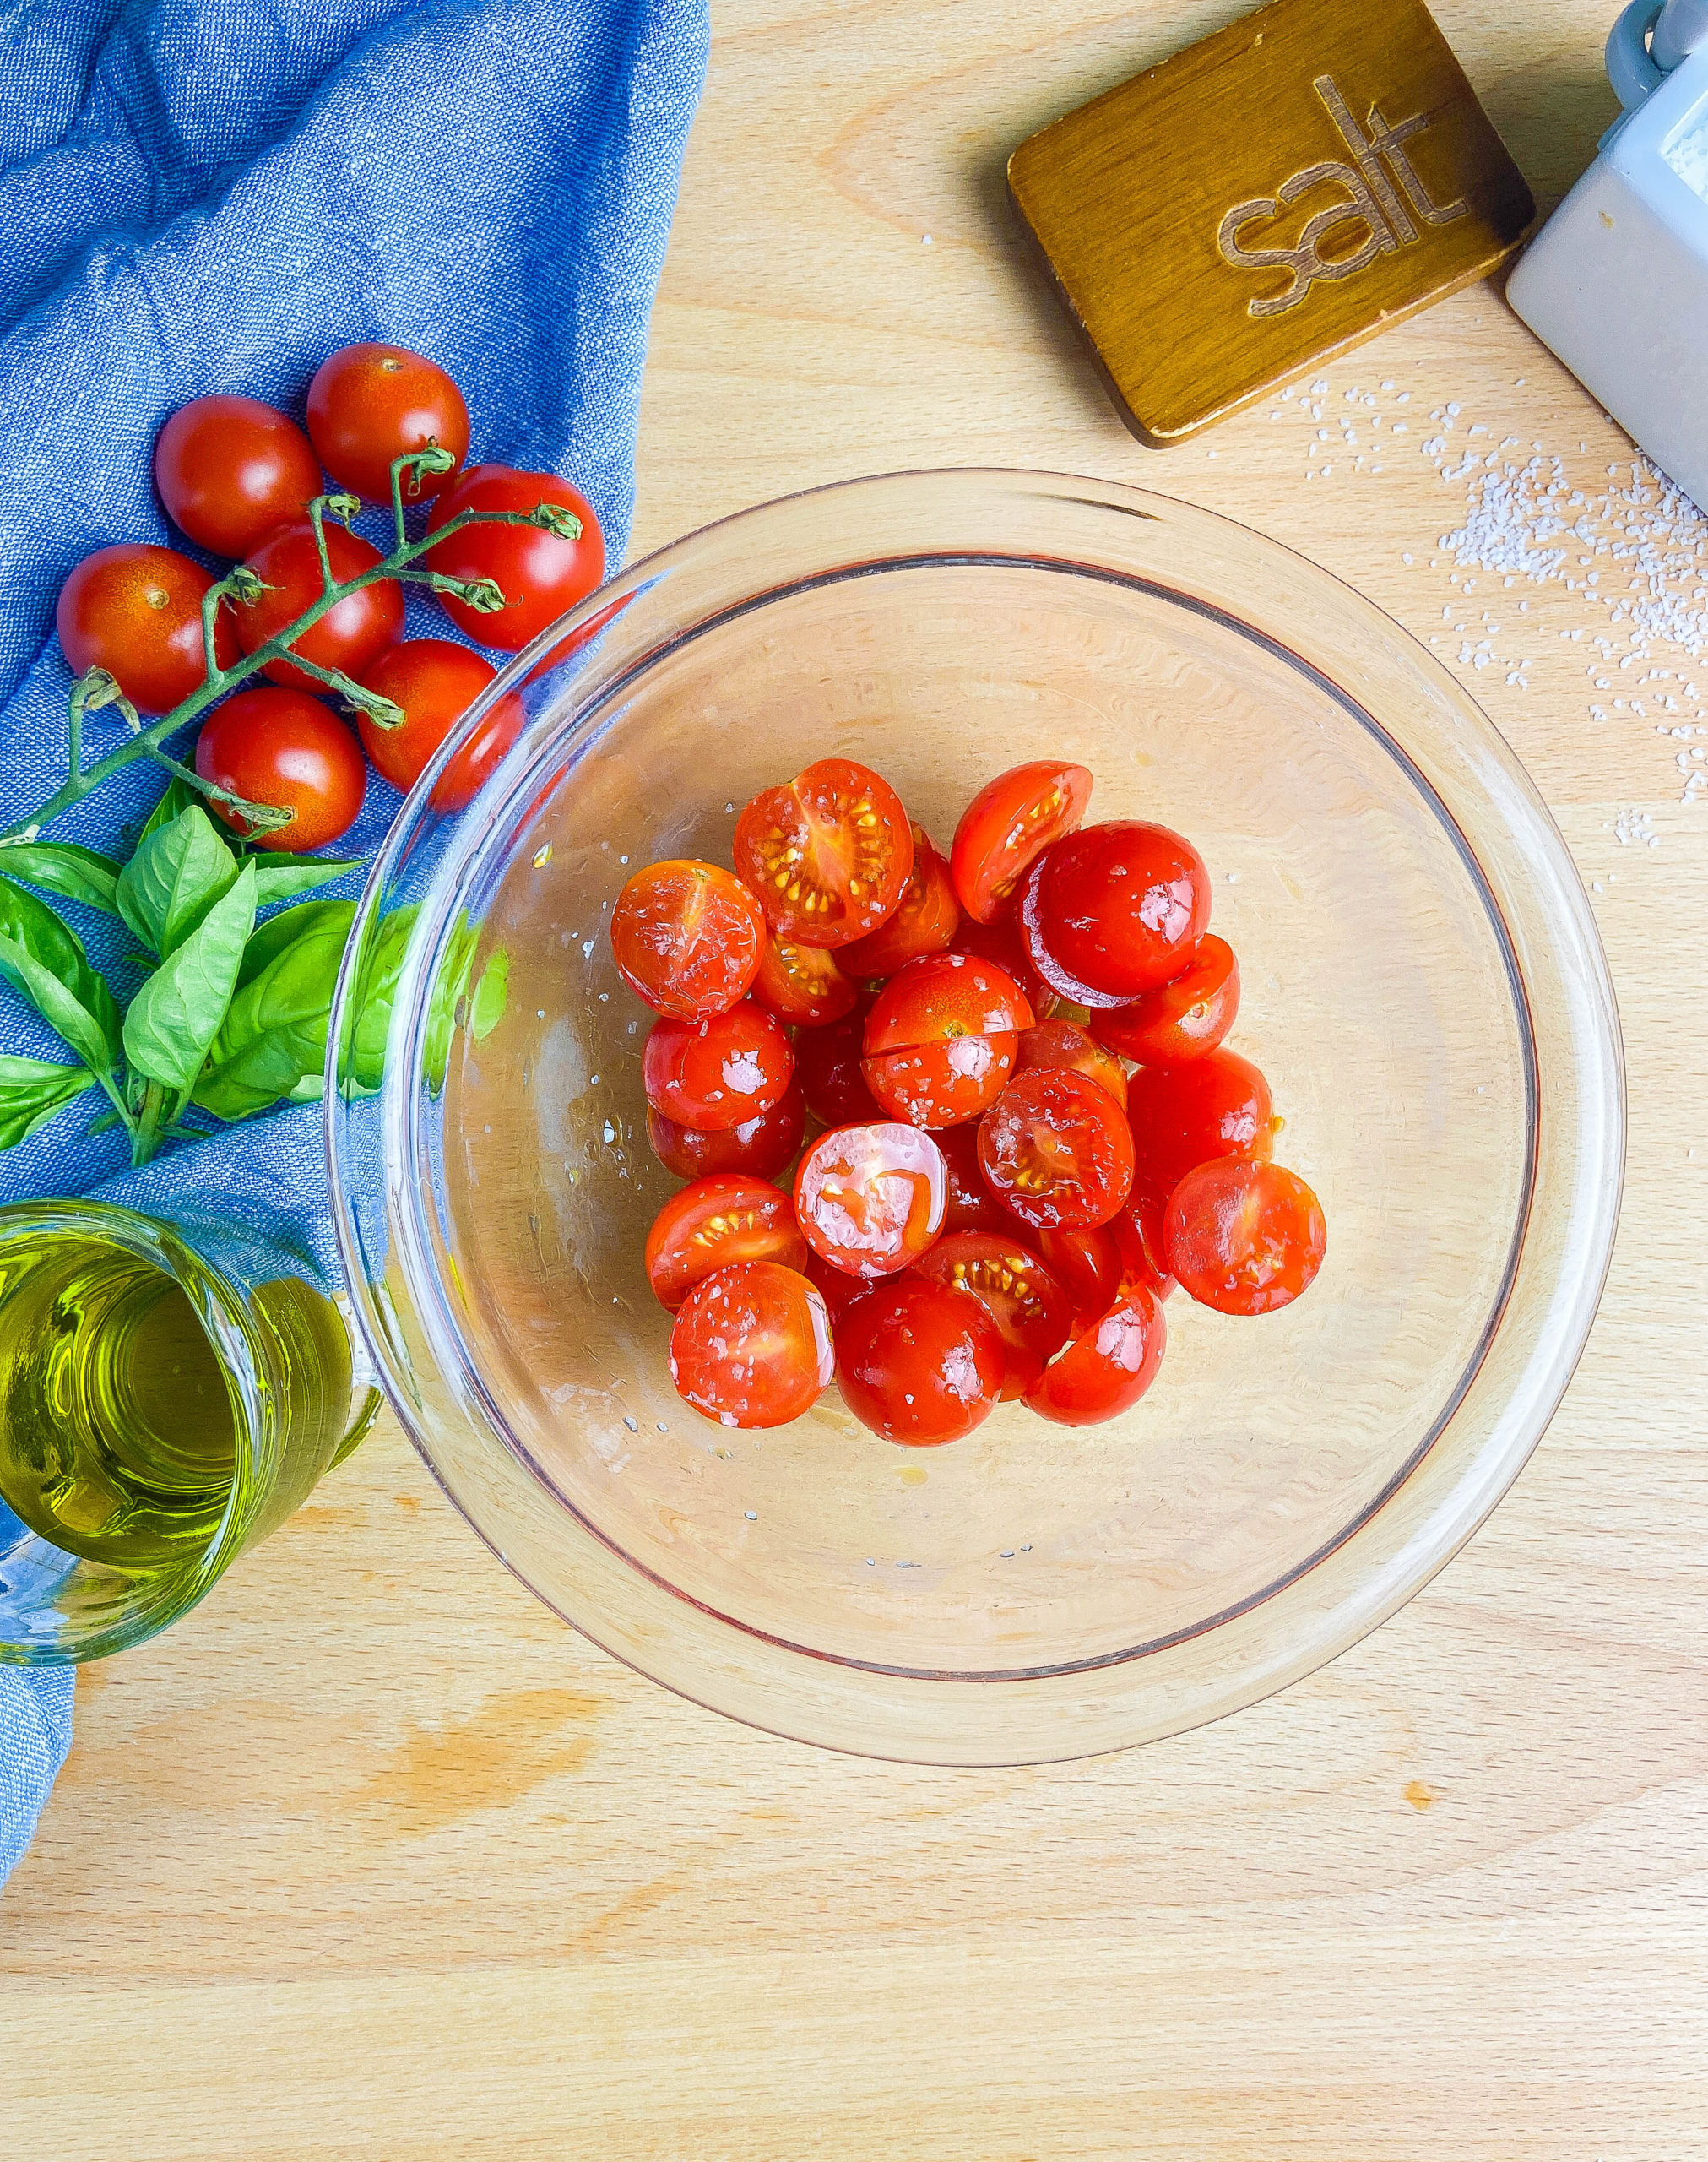 Overhead photo of cherry tomatoes in a glass bowl on a wooden cutting board. Olive oil, basil and tomatoes on a blue towel.